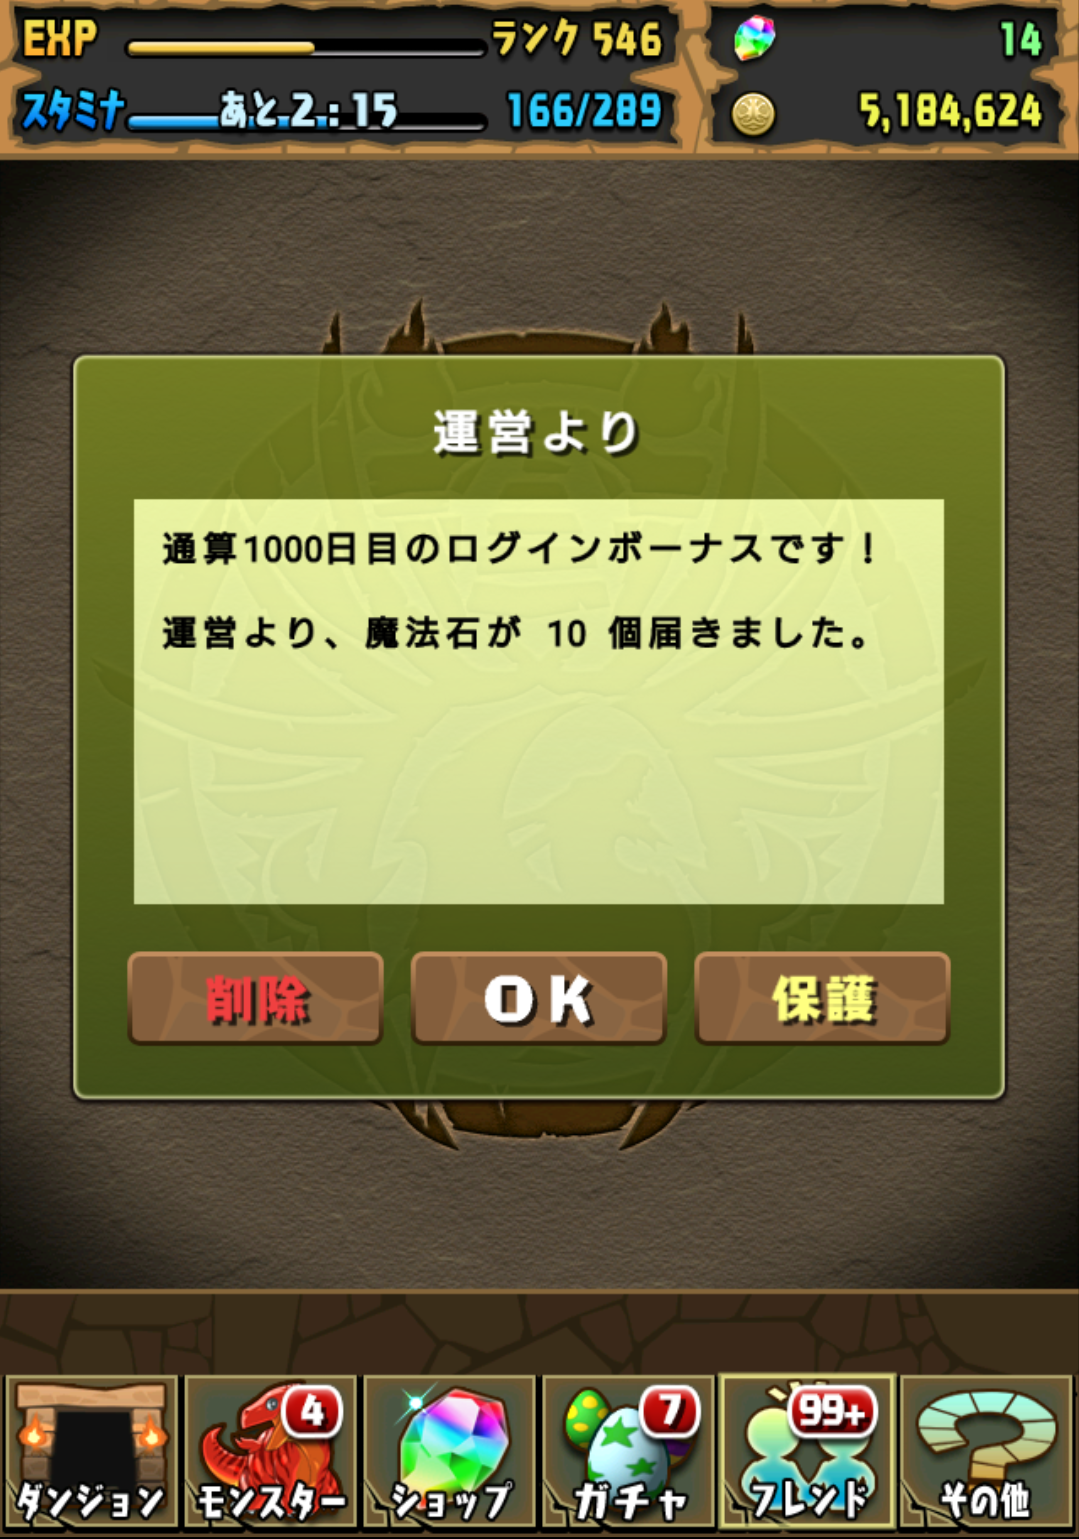 Screenshot_2015-09-13-11-53-59.png